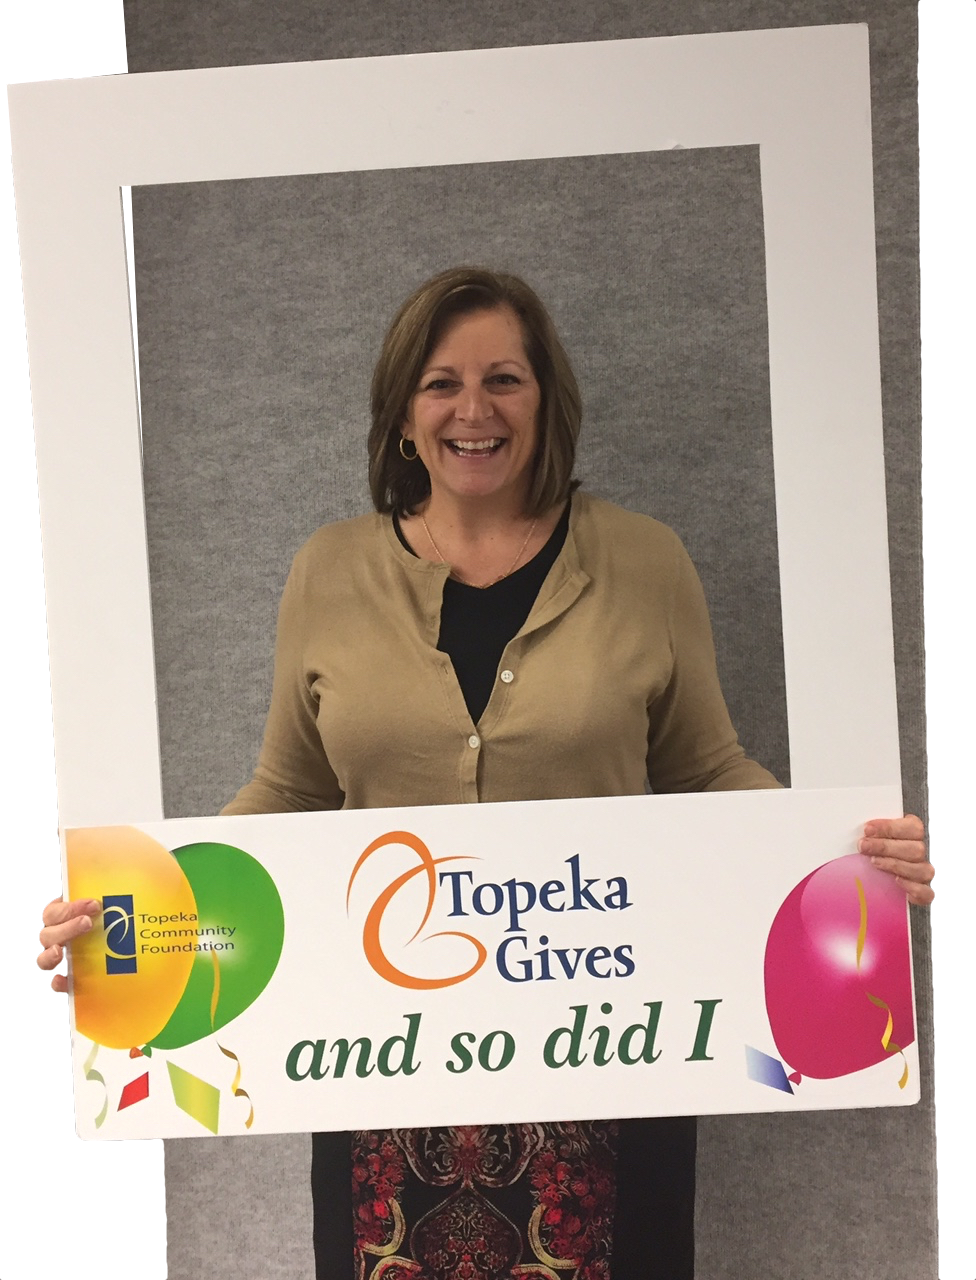 Picture a brighter future for the health of Topeka.   - Then picture yourself making it happen.